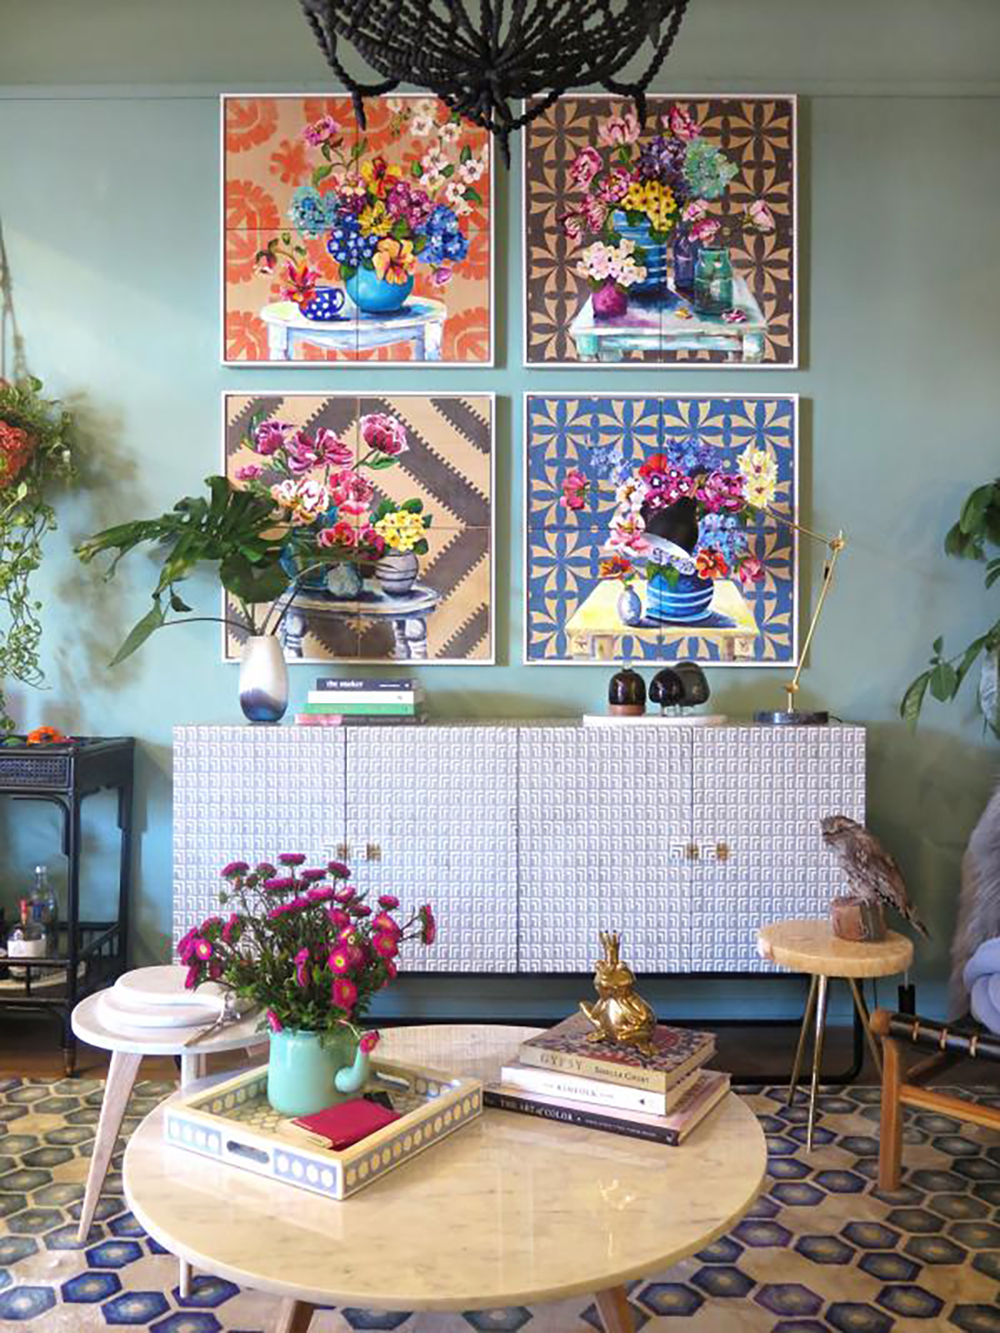 Ali Wood still life and flowers paintings - How to give life to your interior with floral pattern? | Aliz's Wonderland